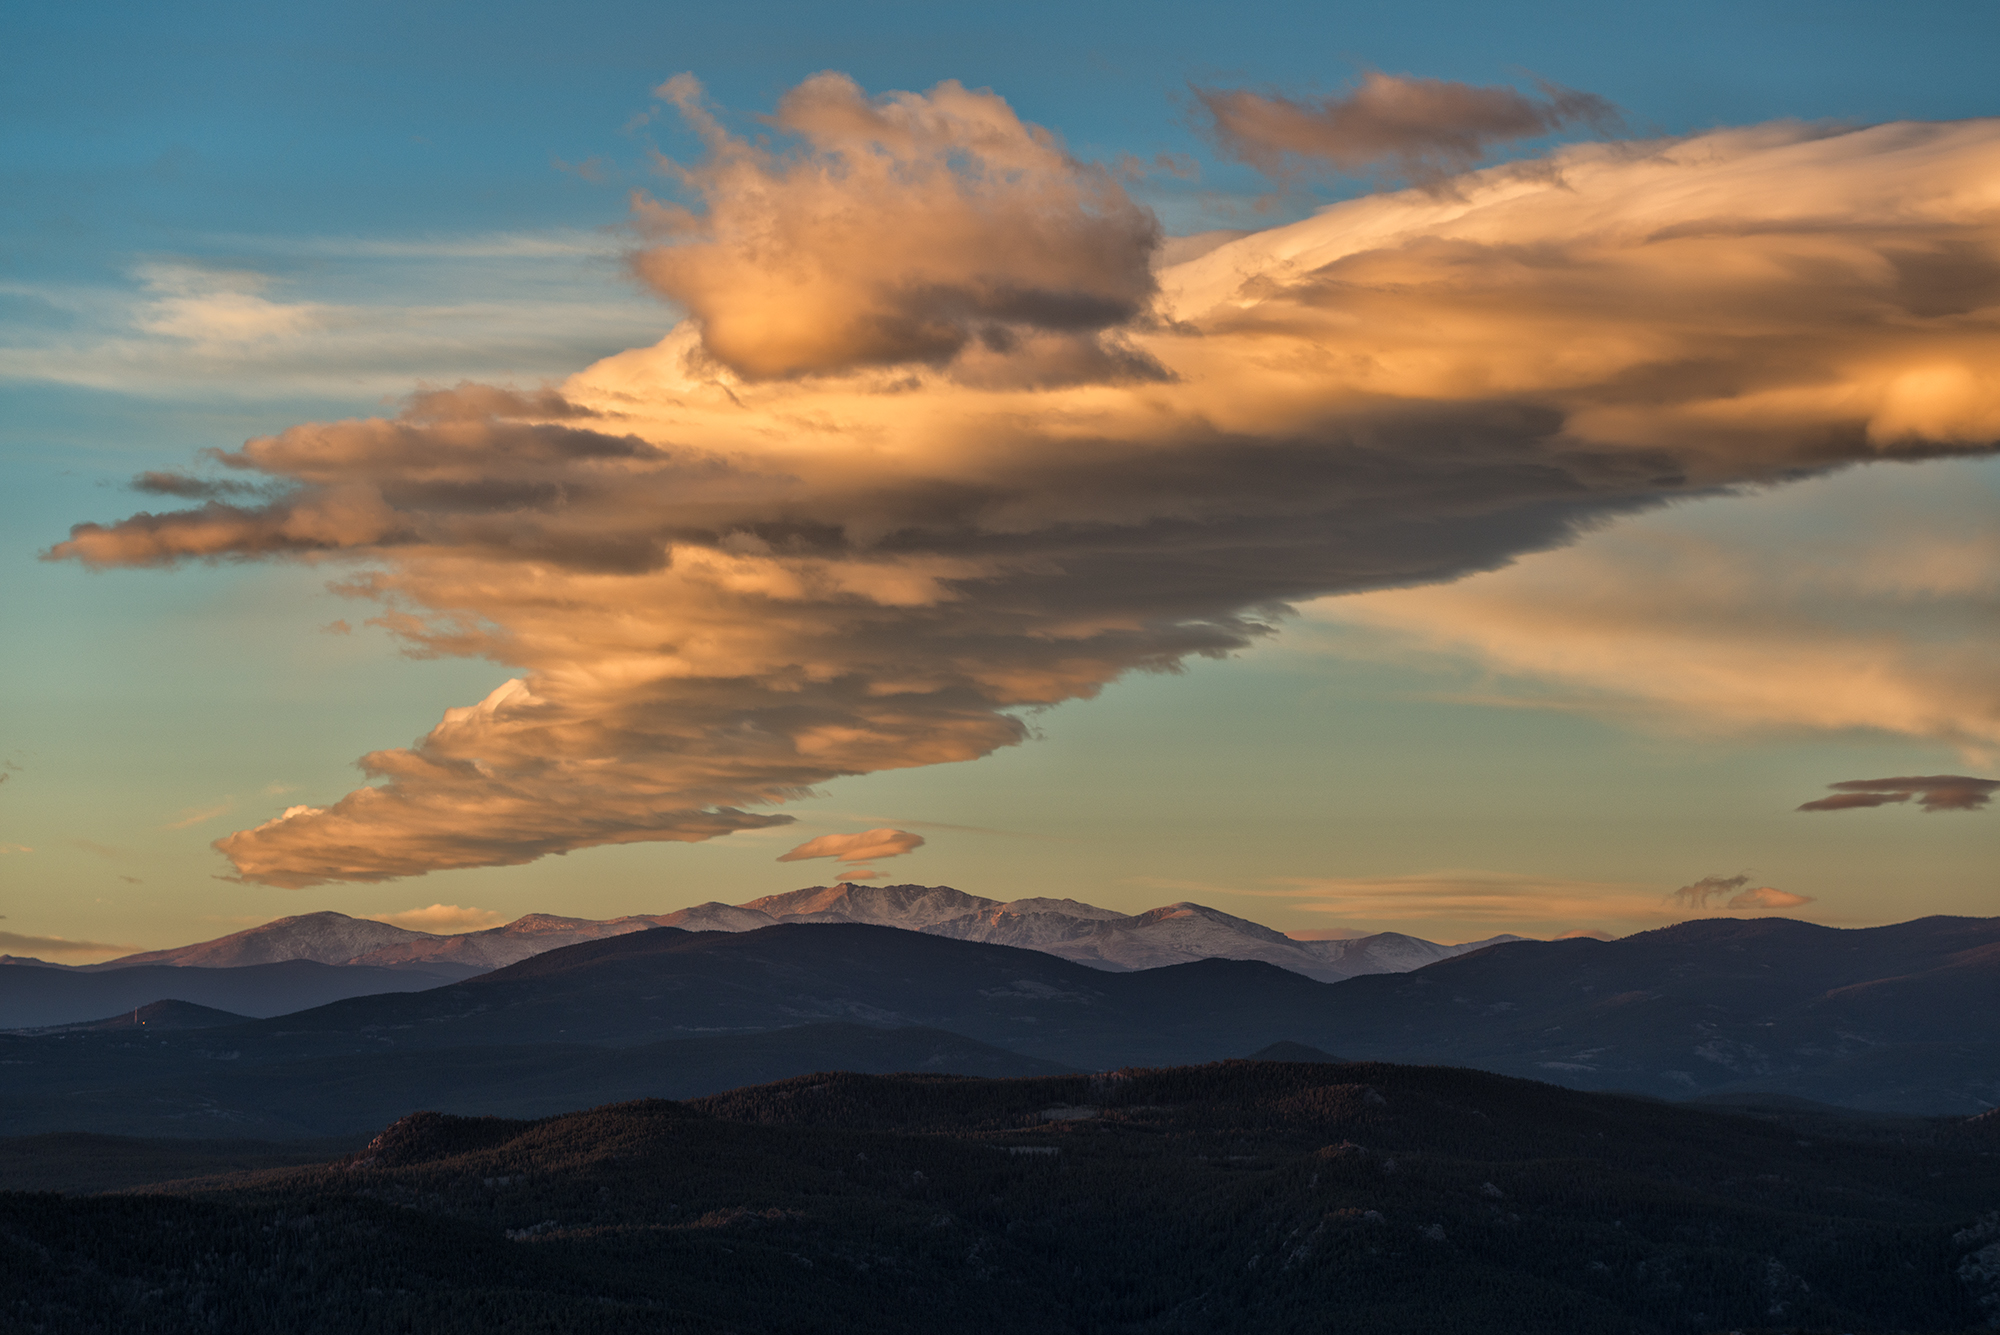 Mt. Evans at Sunrise. From Sugarloaf Mountain, Colorado, 2016